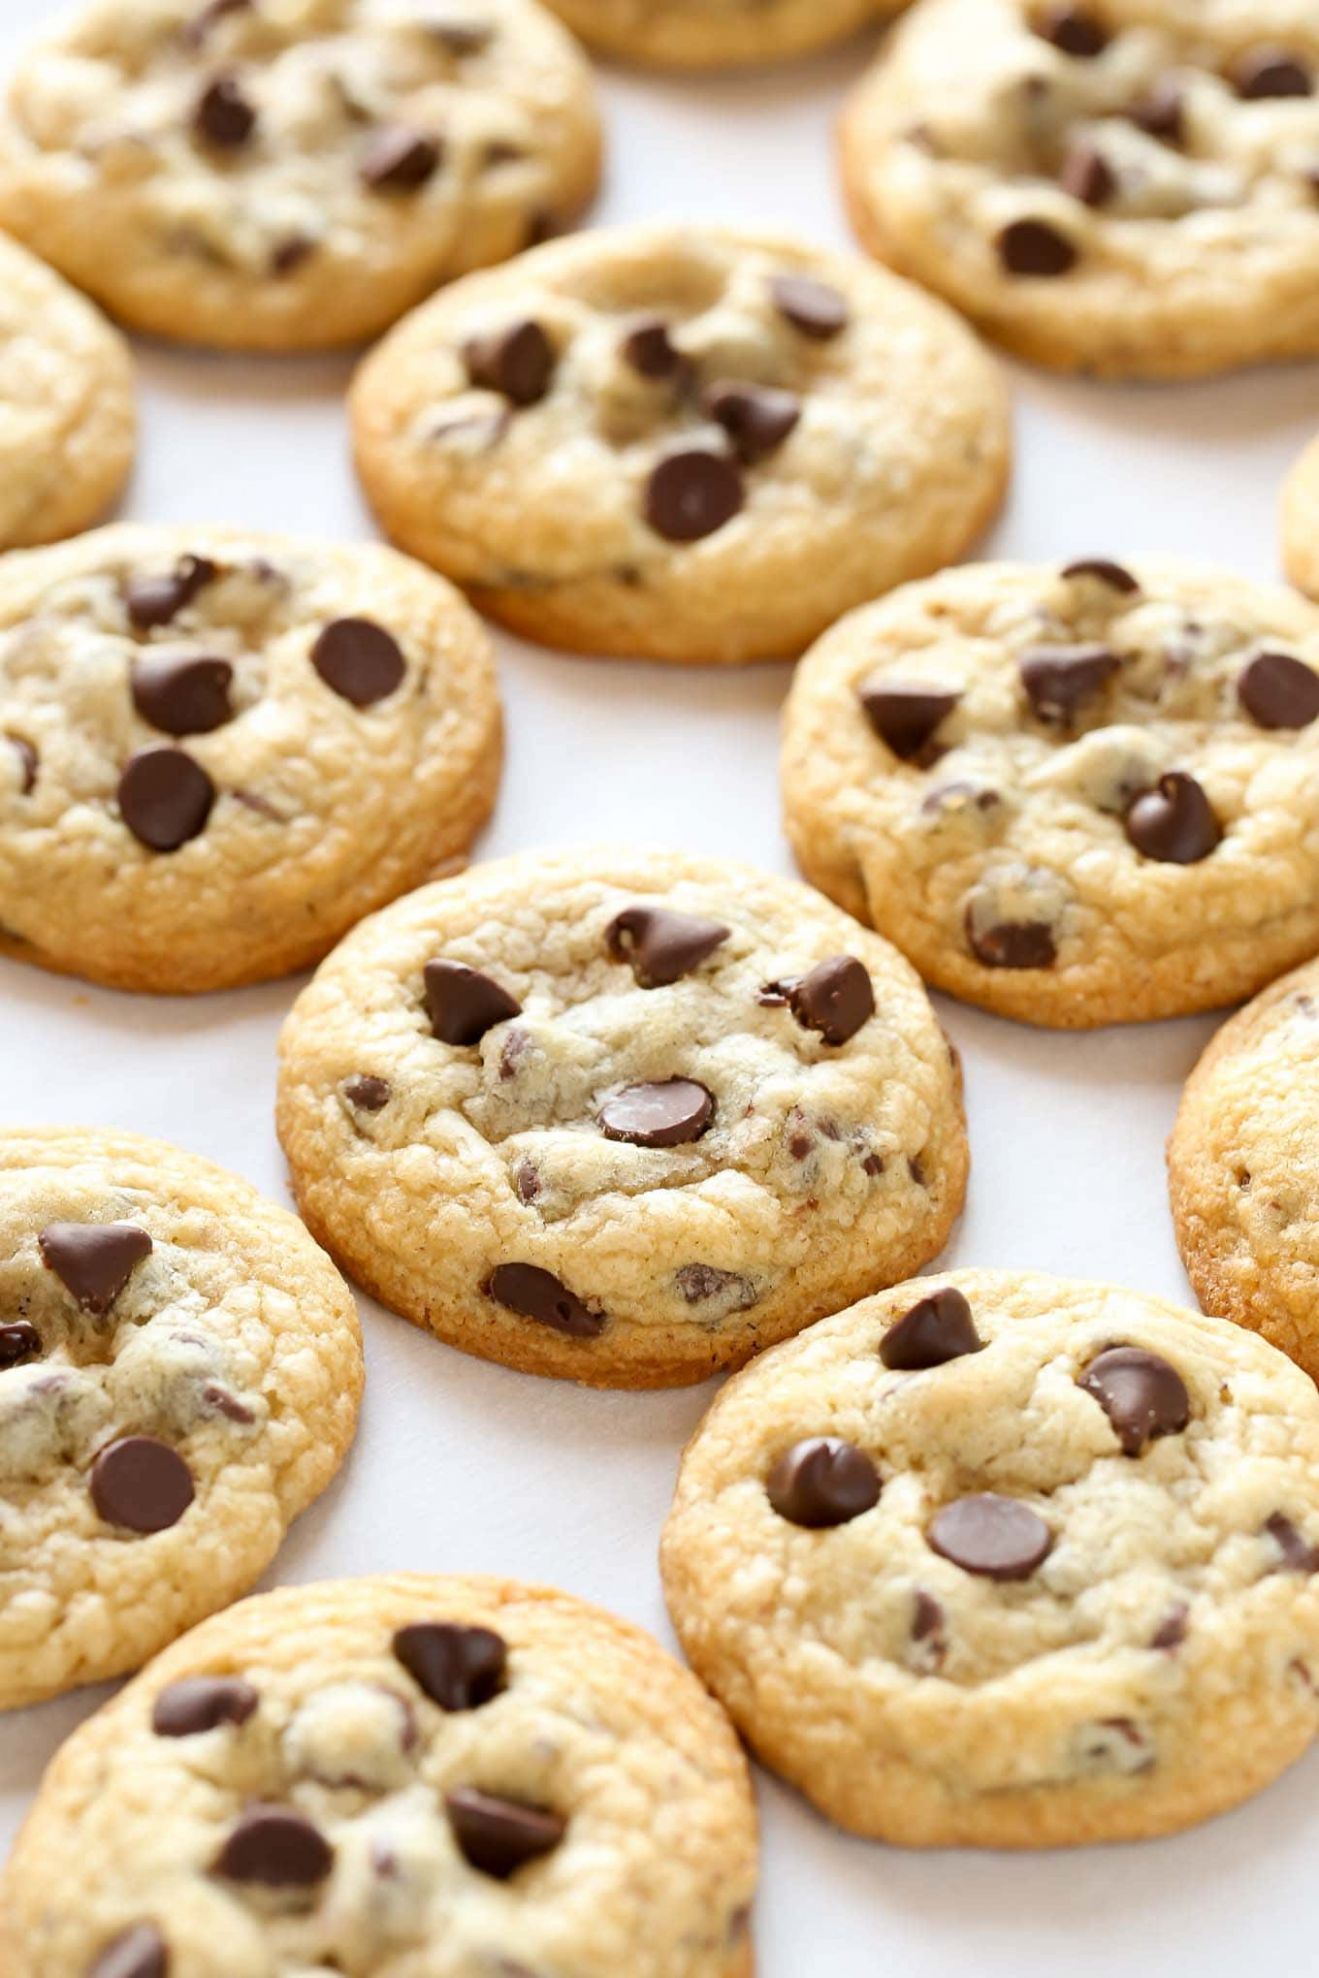 Soft and Chewy Chocolate Chip Cookies - Chocolate Chip Recipes